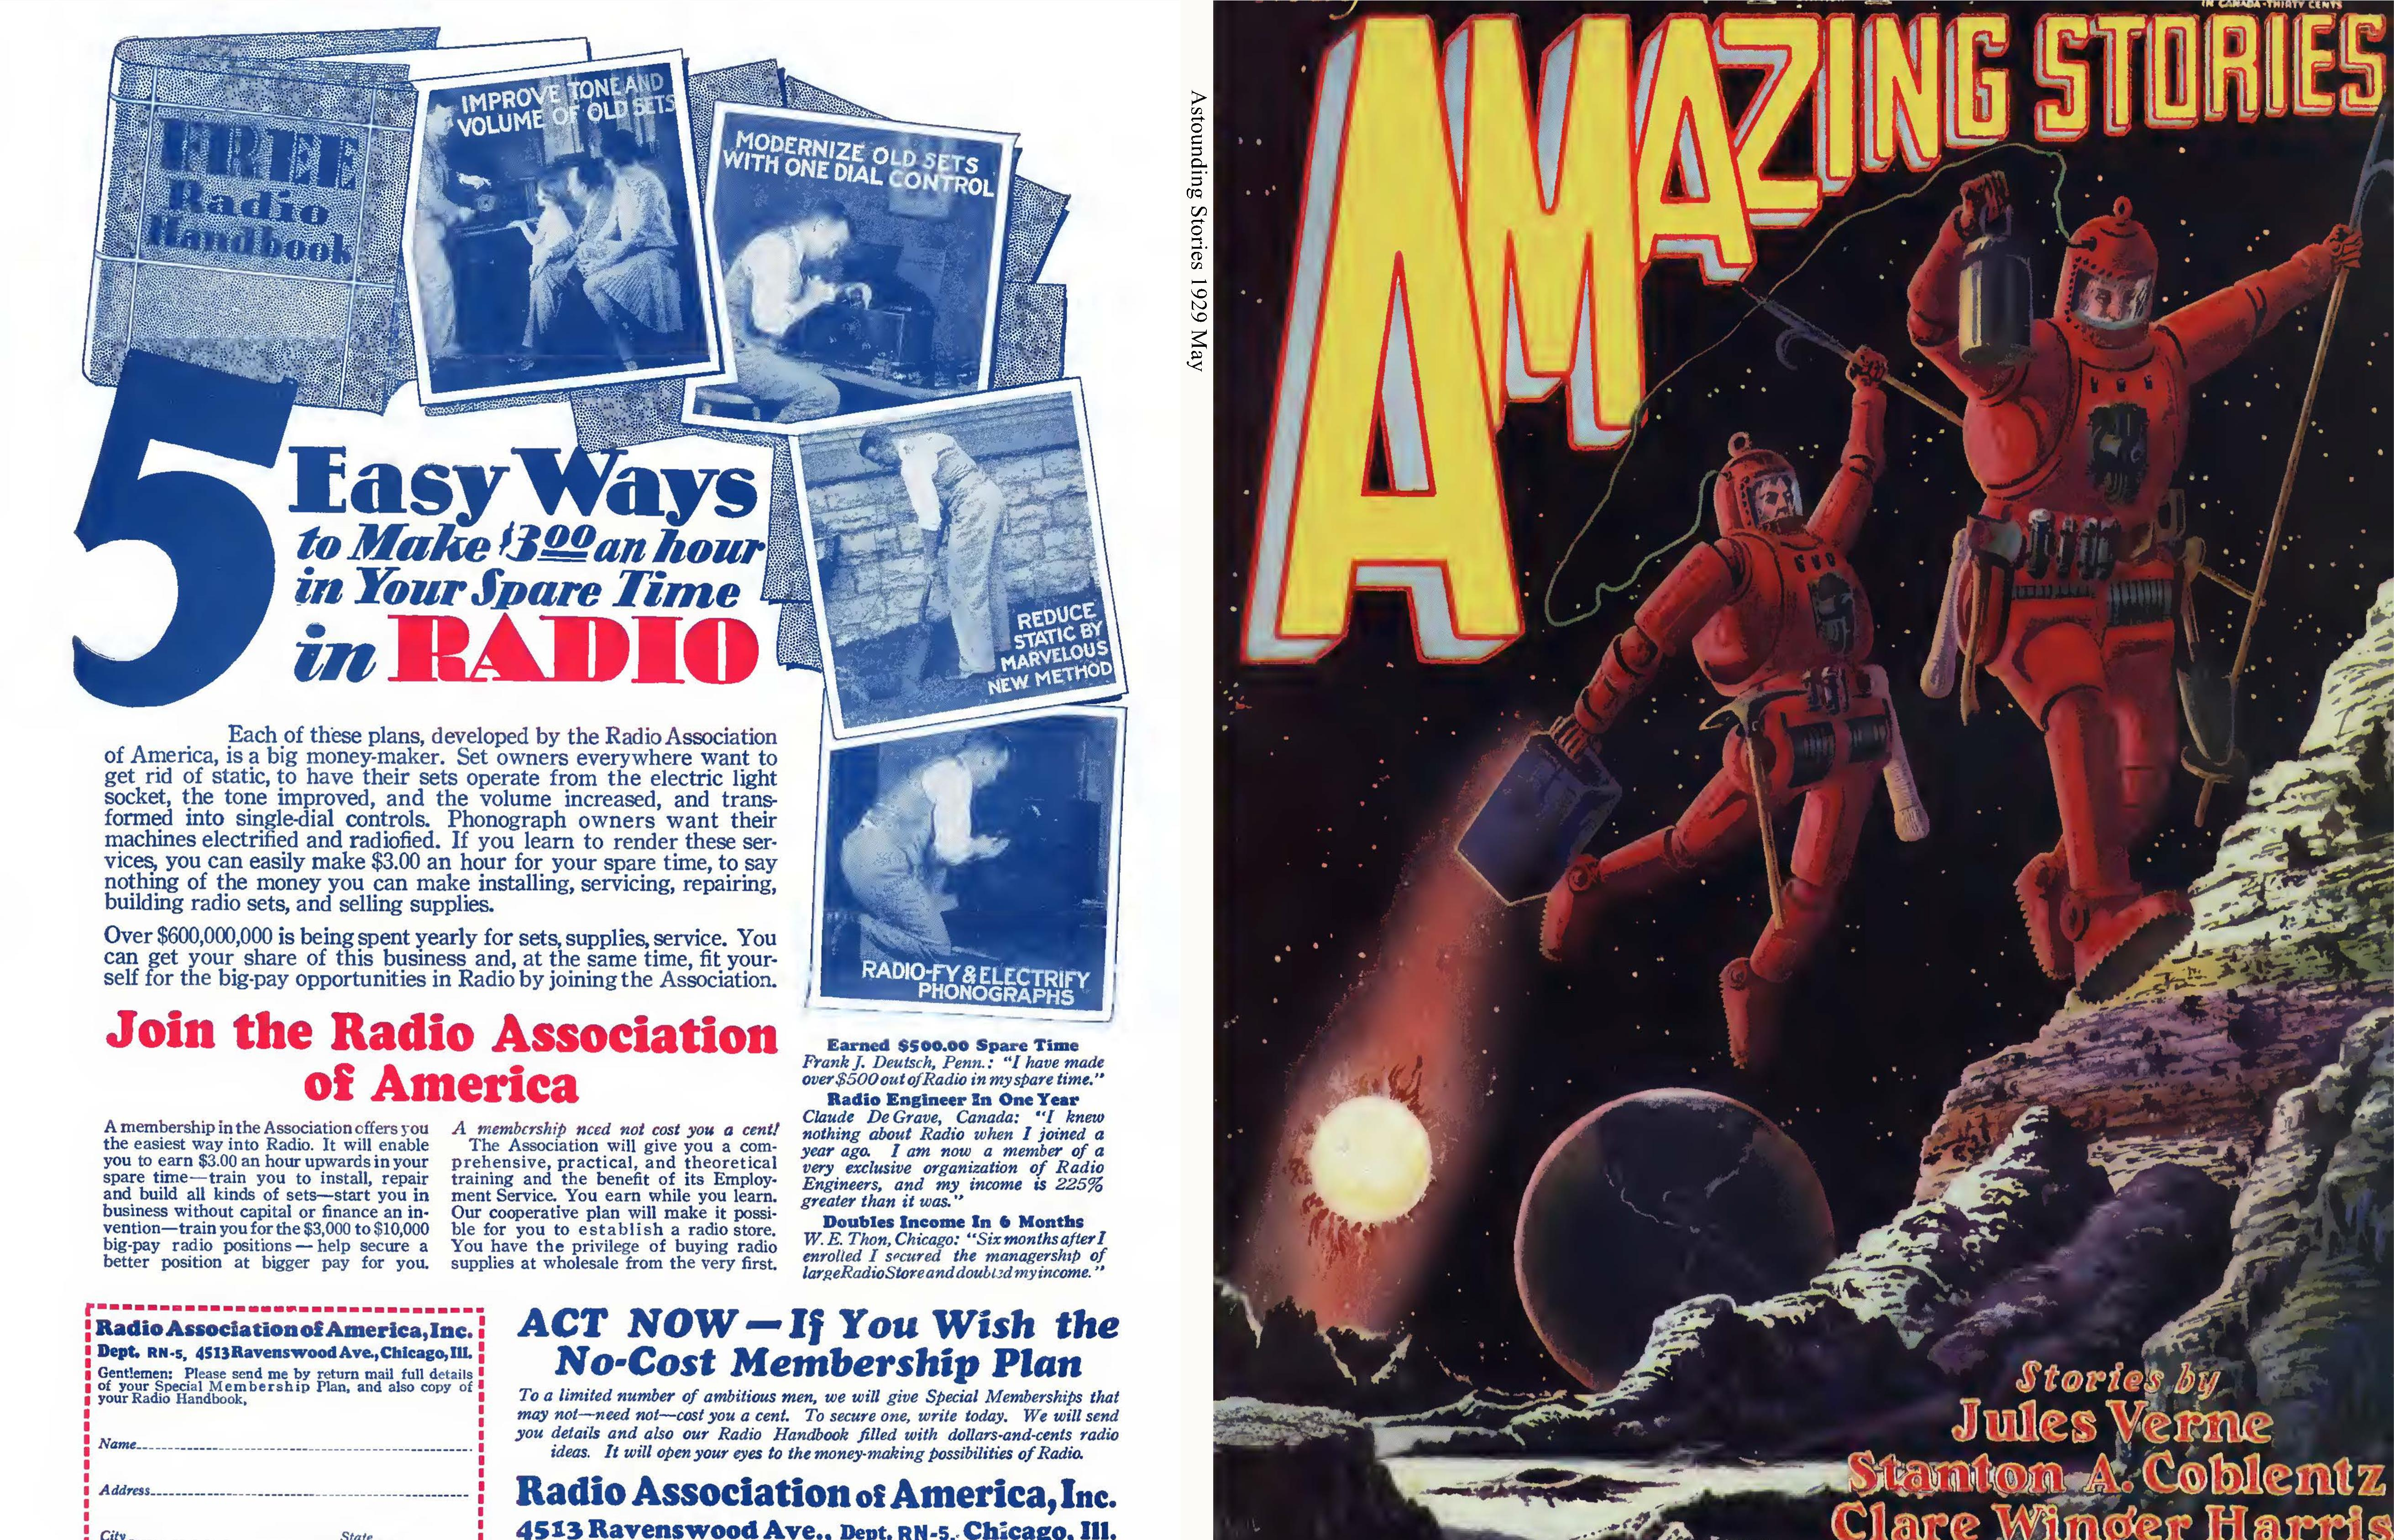 Amazing Stories 1929 May cover image